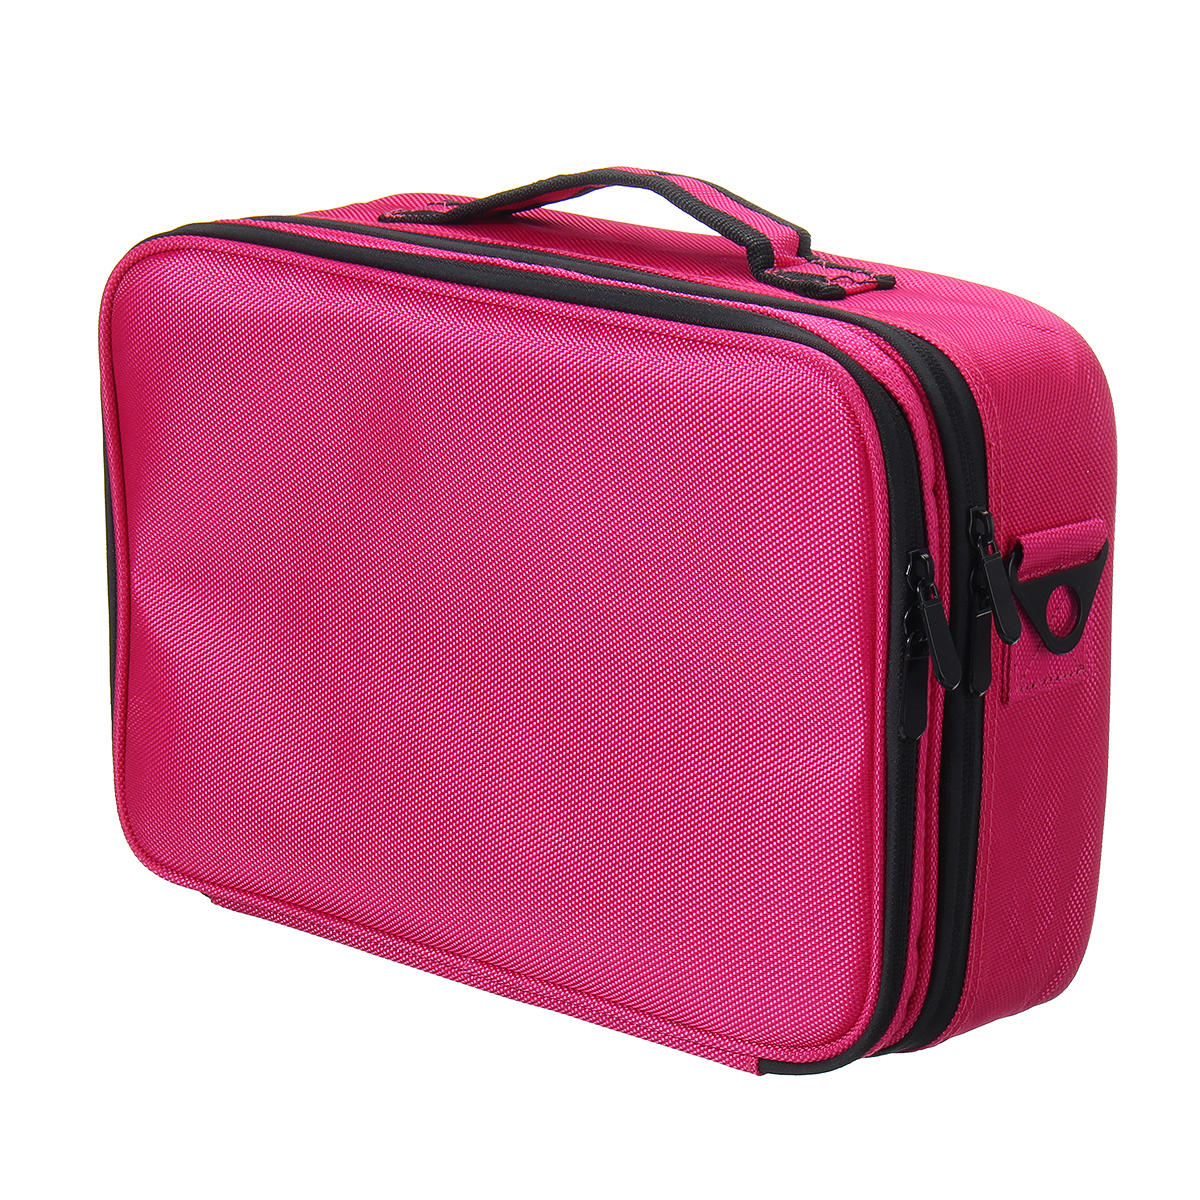 IPRee® 3 Sizes Women Fashion Oxford Cosmetic Bag Travel Makeup Organizer Professional Make Up Box Cosmetics Pouch Bags